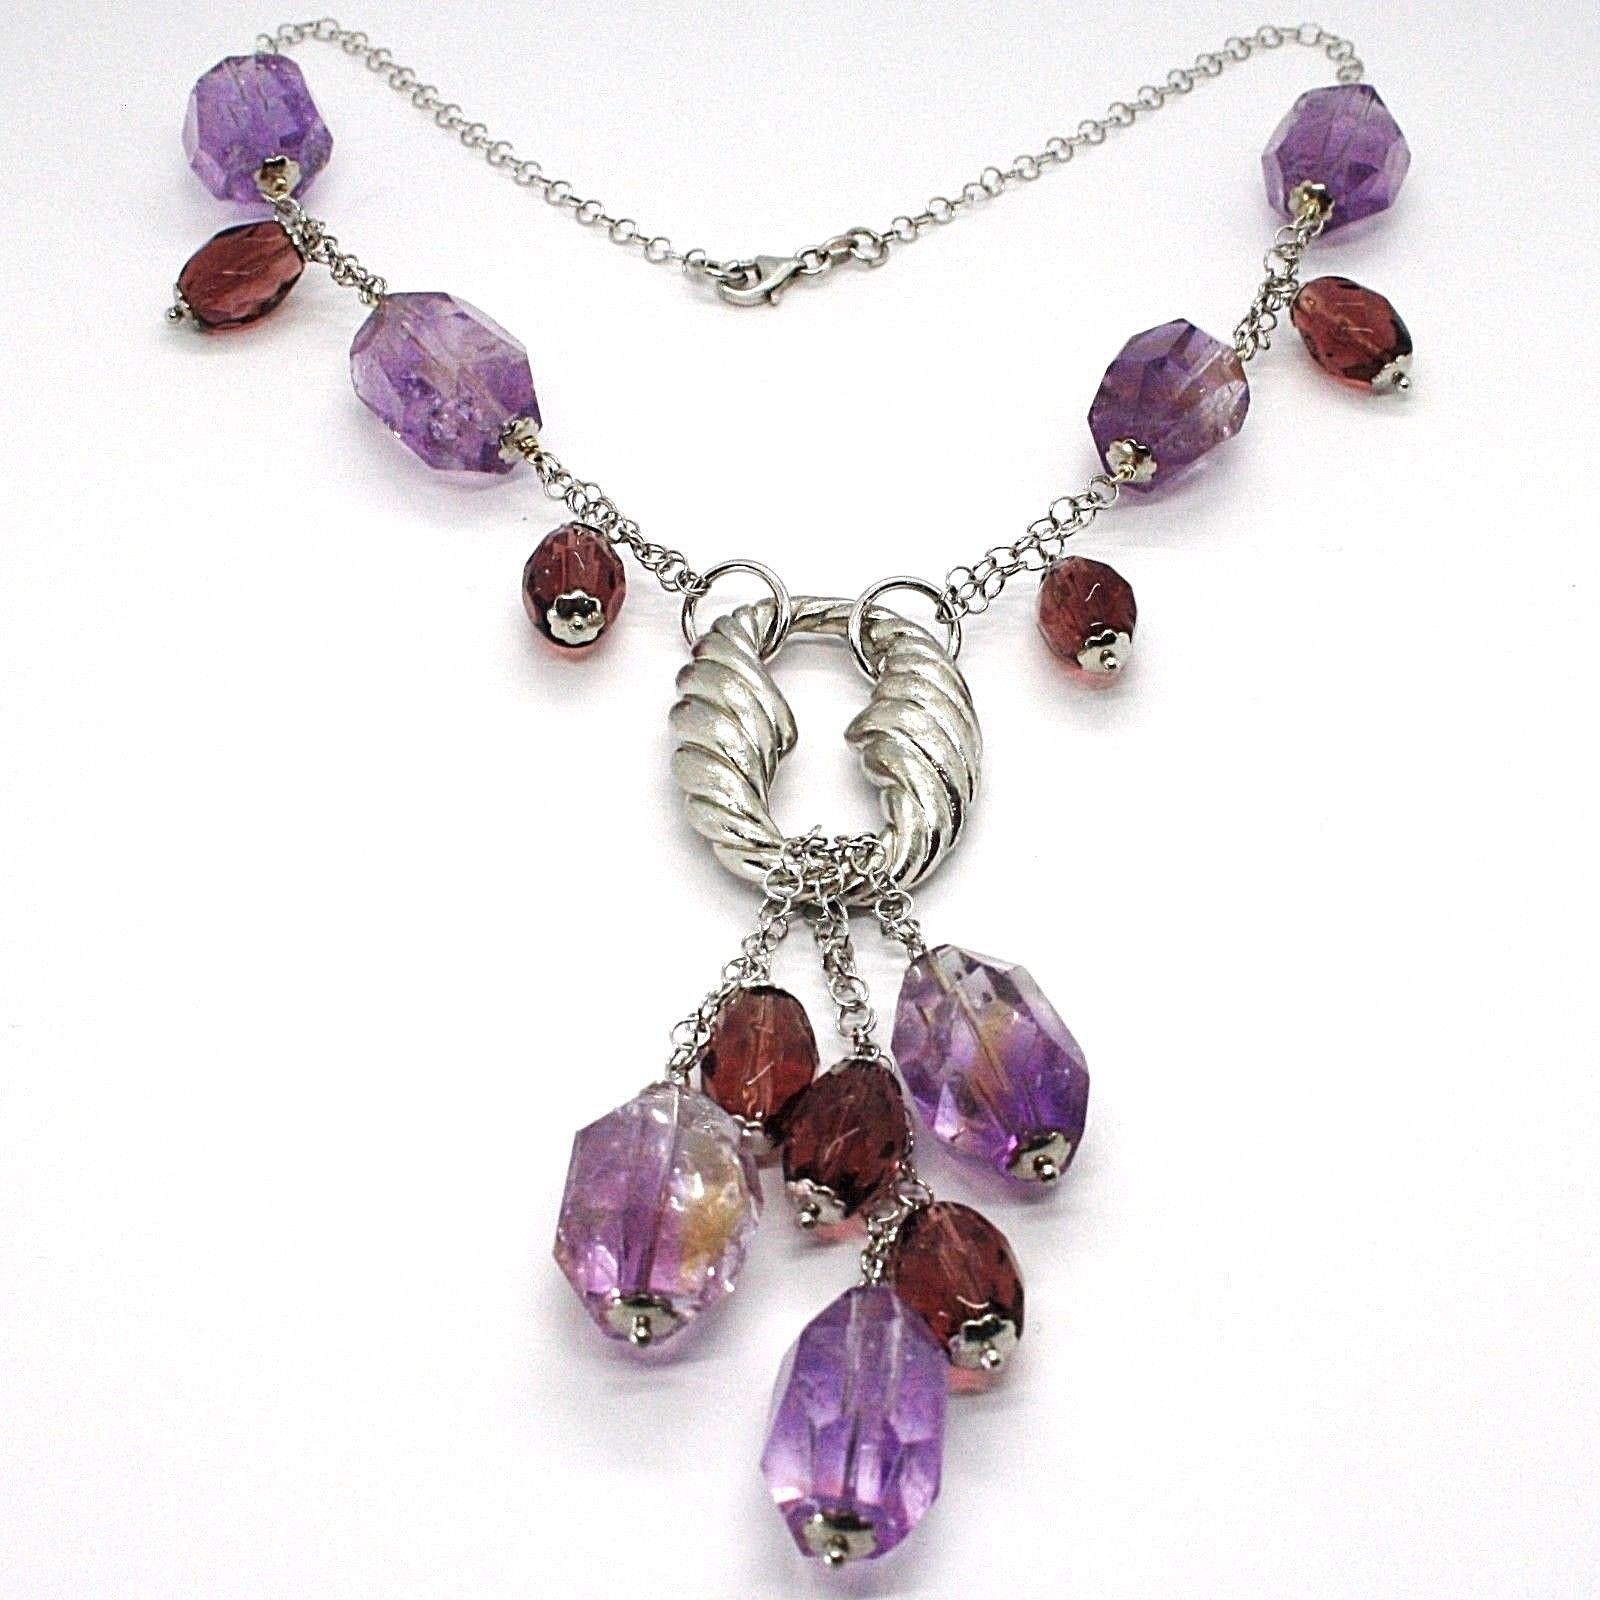 Silver necklace 925, FLUORITE OVAL Faceted Purple Cluster Pendant